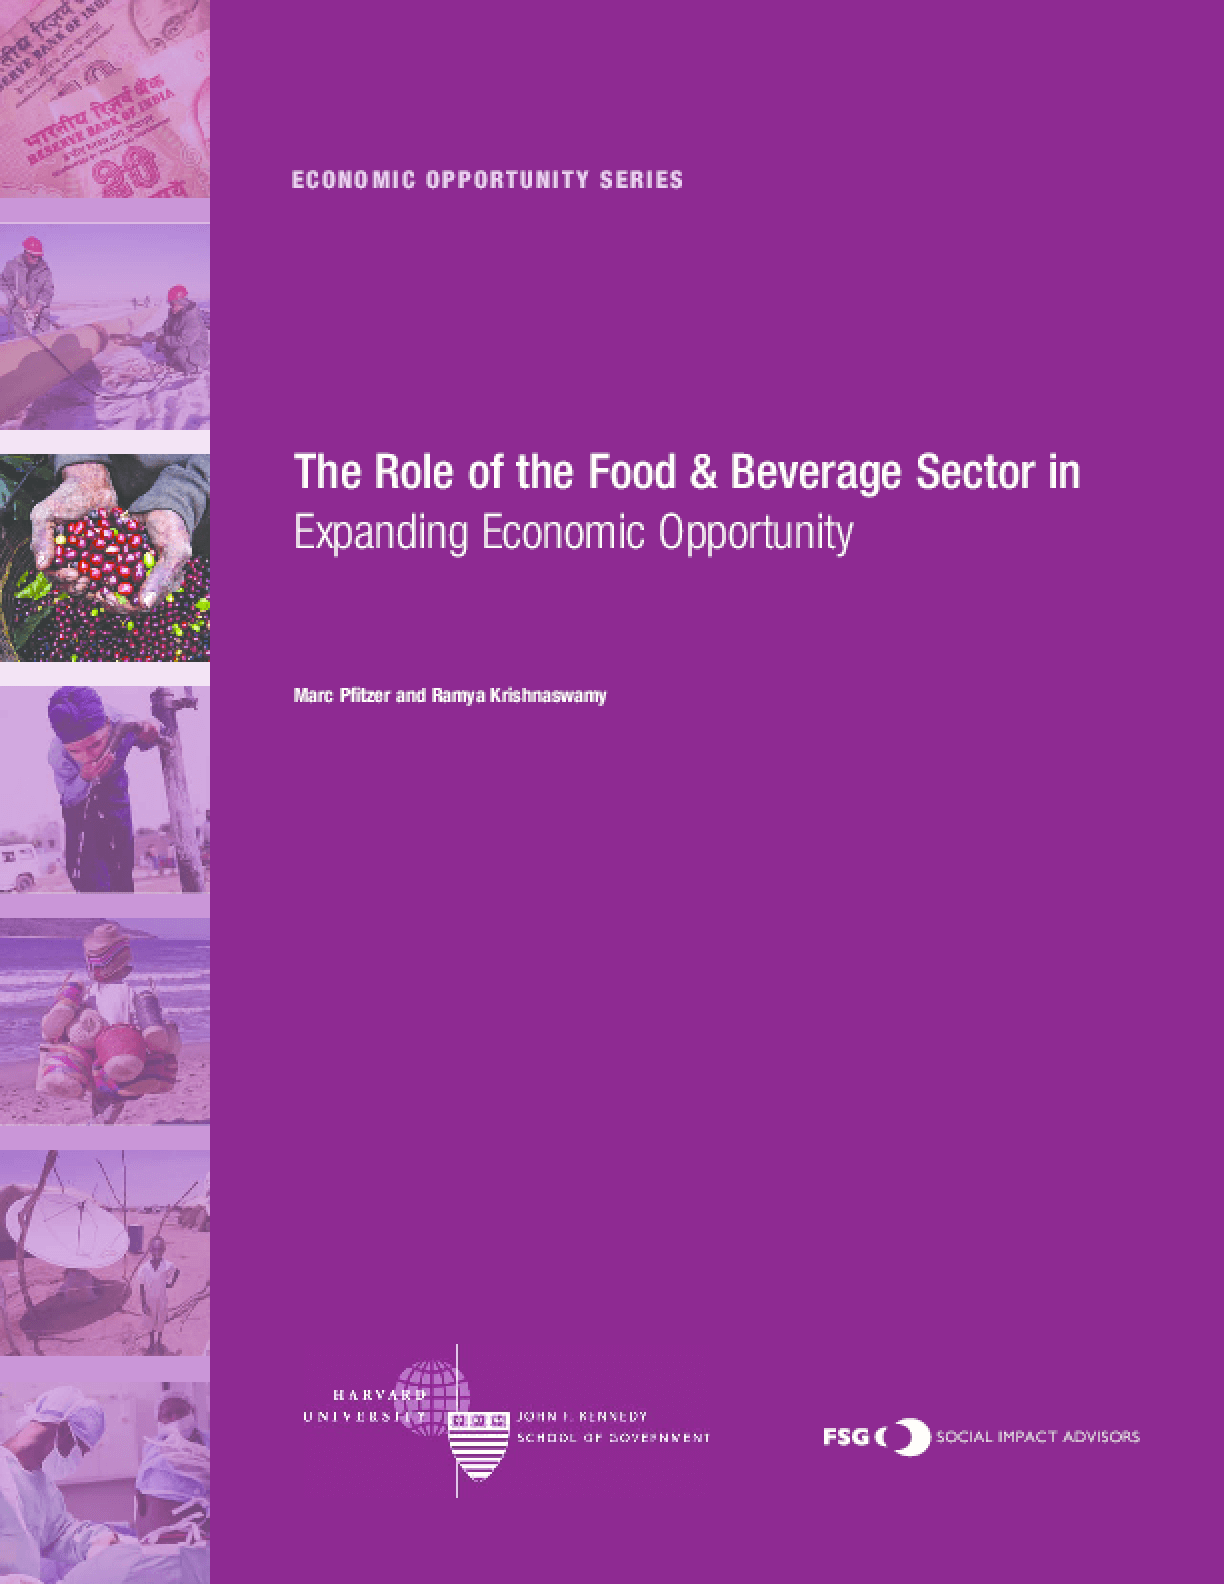 The Role of the Food & Beverage Sector in Expanding Economic Opportunity